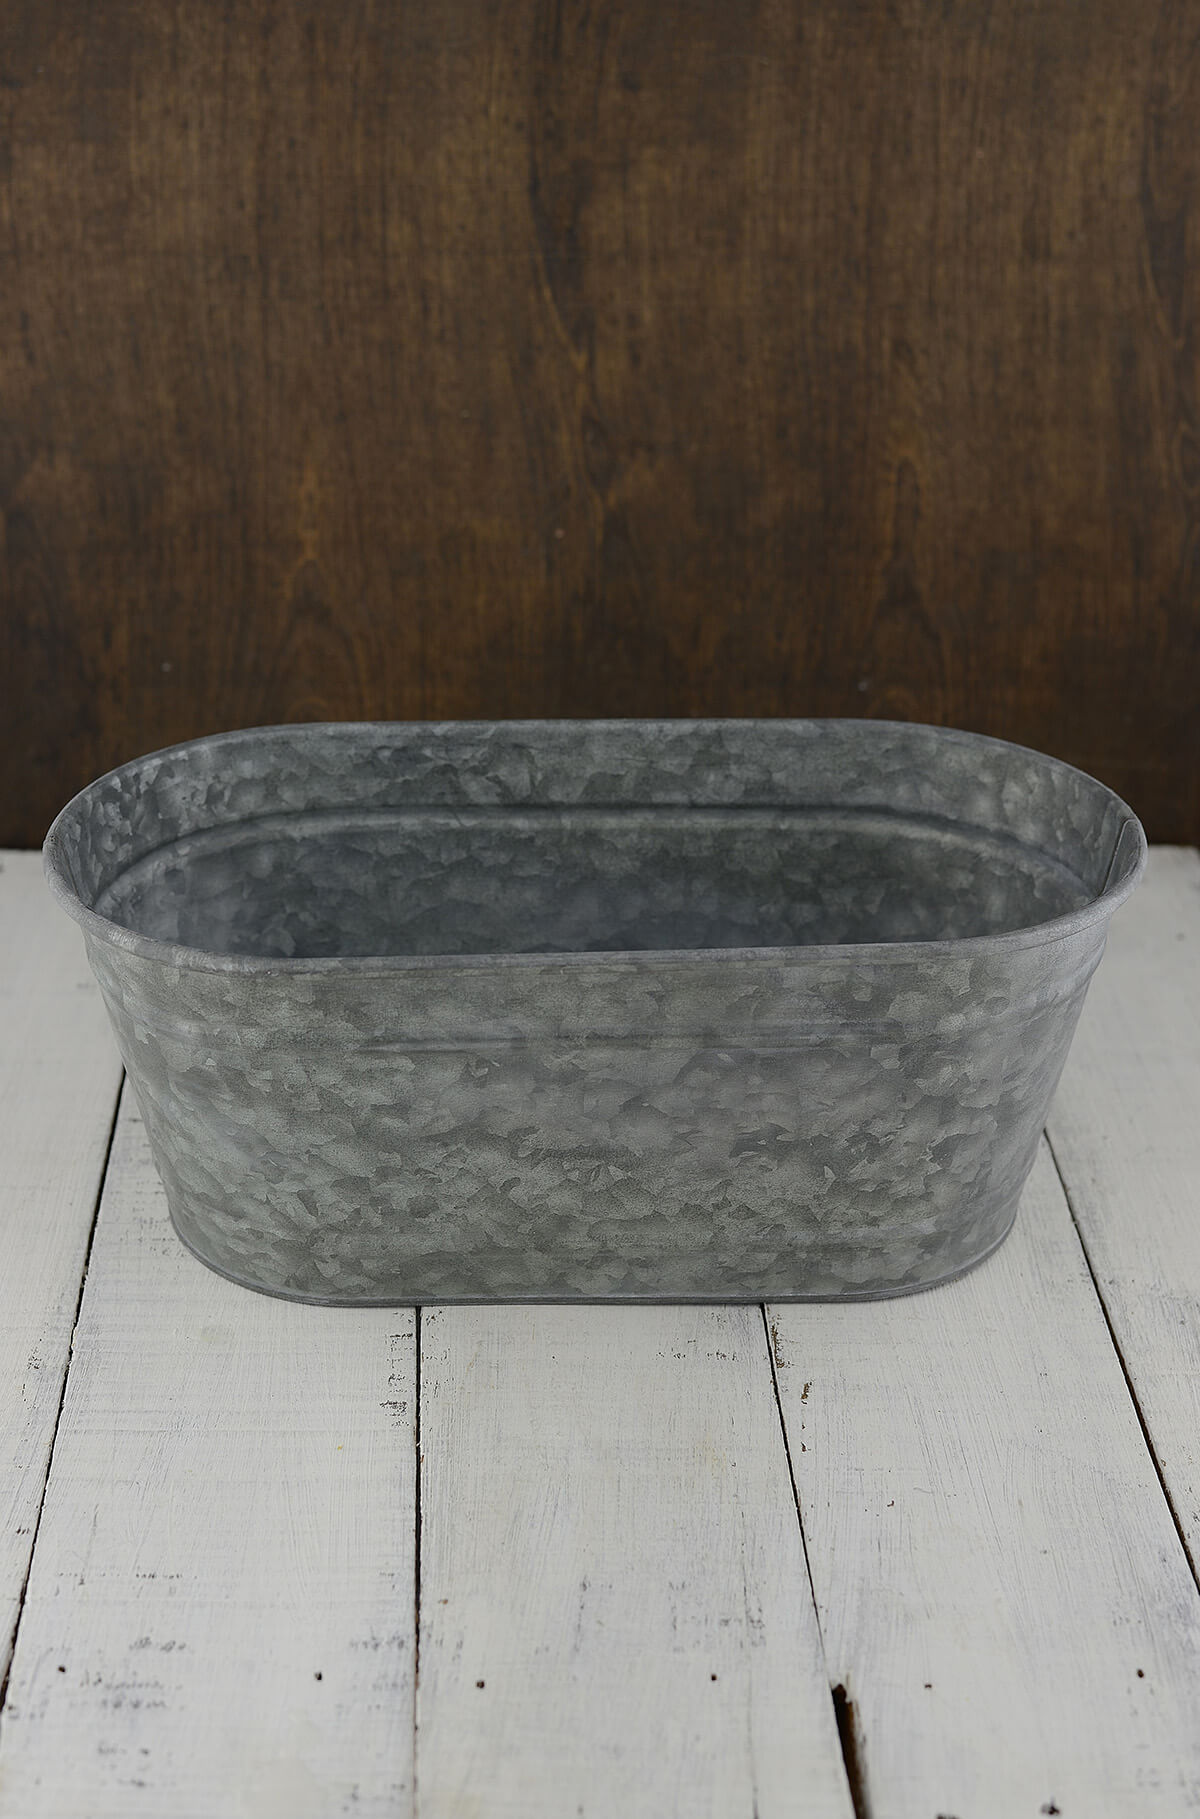 Galvanized Bucket Oval 12 5in